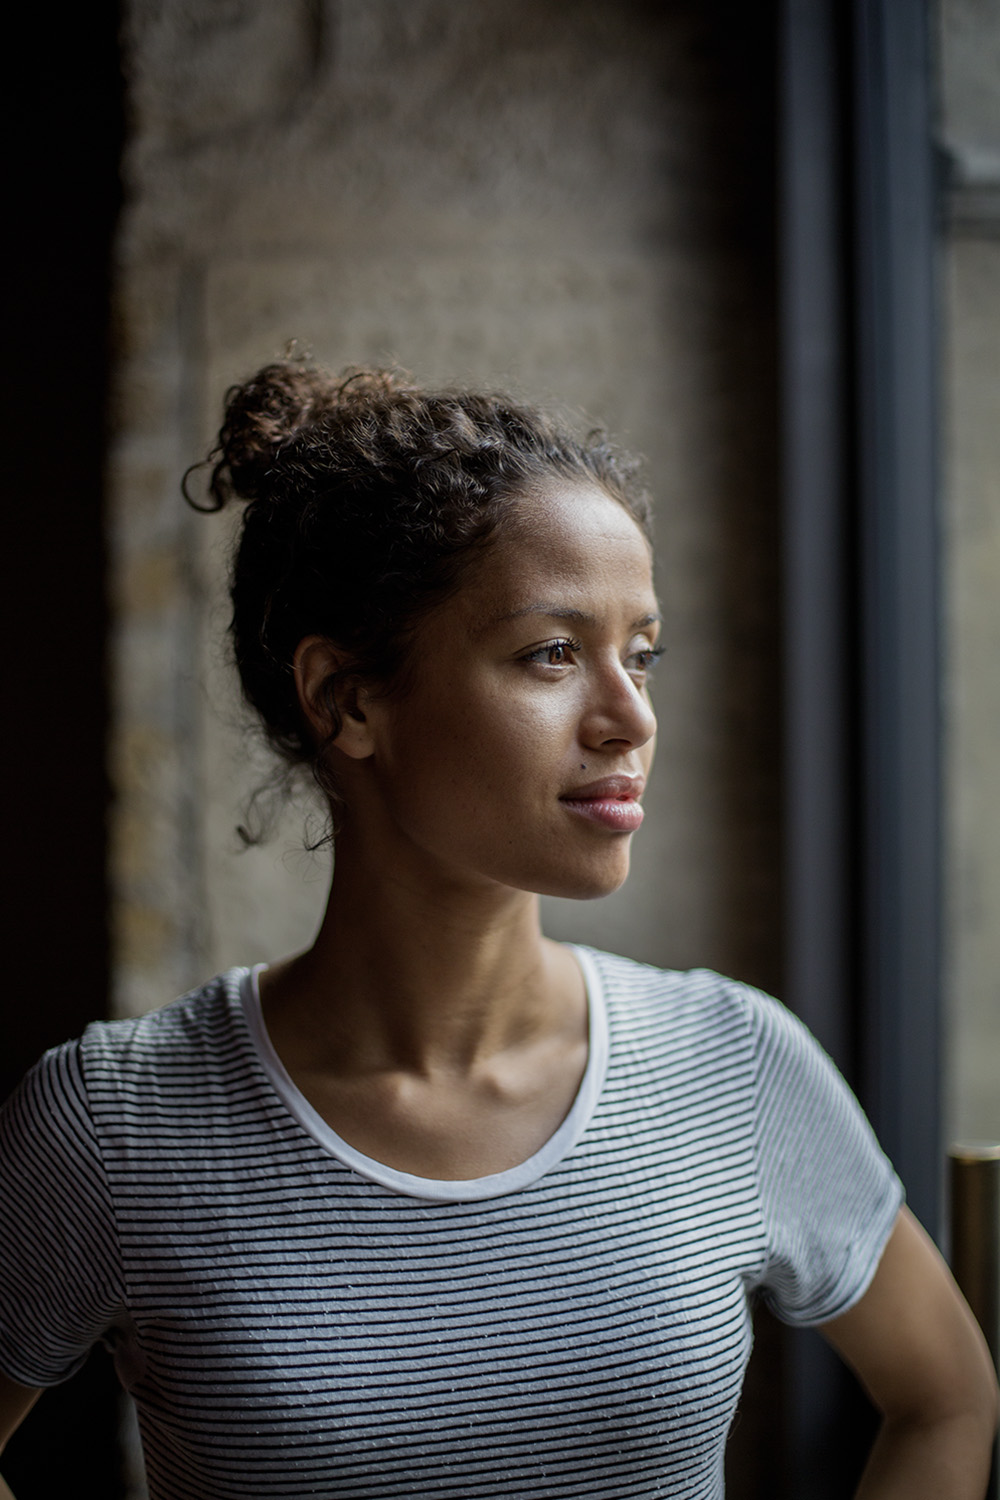 Yay! My portrait of Gugu Mbatha-Raw has just joined the National Portrait Gallery's permanent collection. Gugu is pictured backstage at the Royal Court Theatre in London, preparing to perform in The Children's Monologues, directed by Danny Boyle, in aid of the arts charity Dramatic Need.